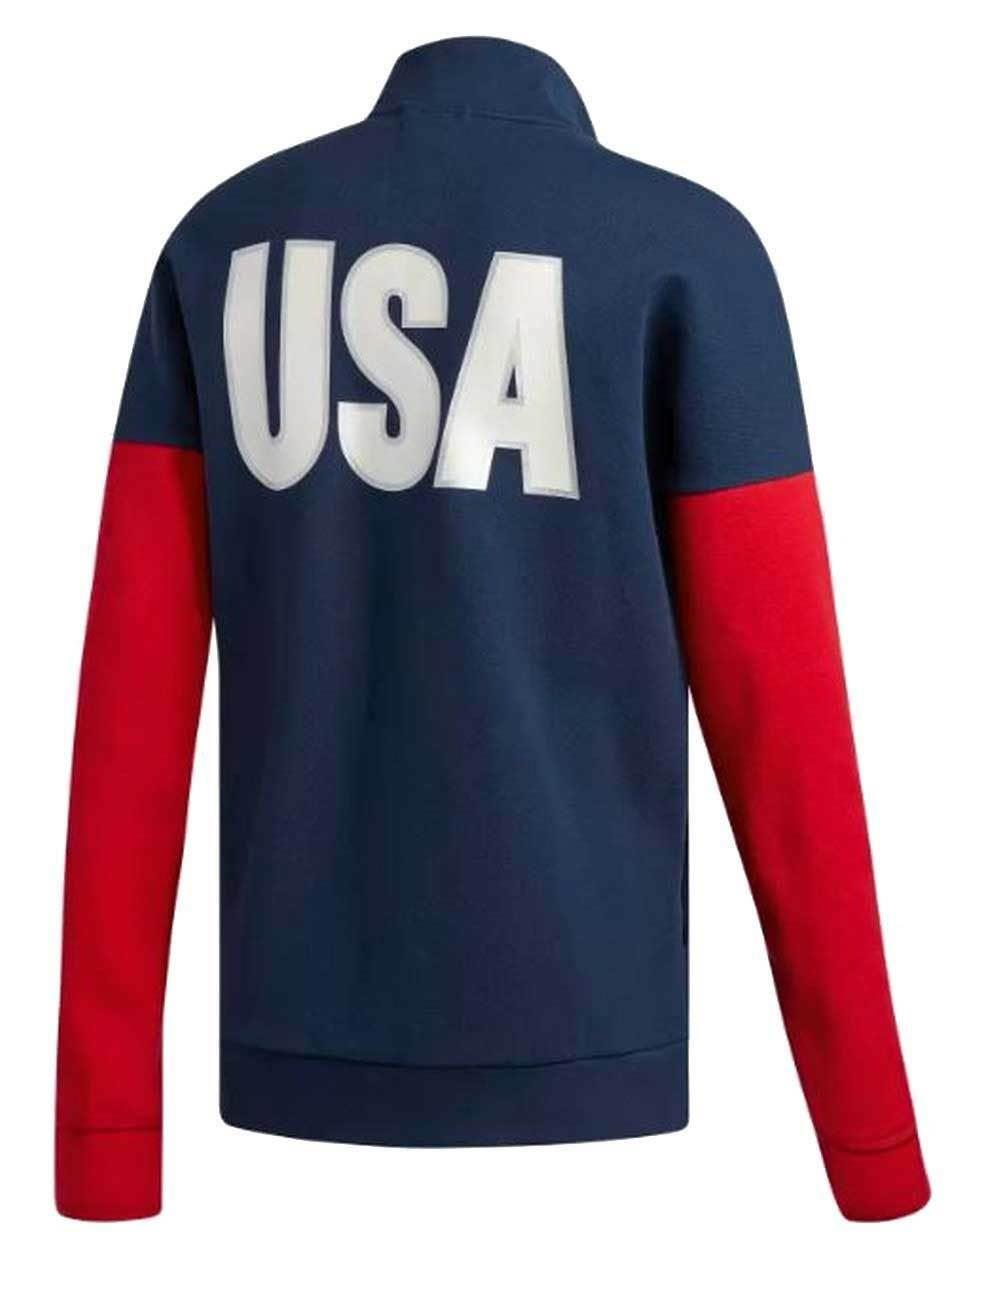 adidas-USA-VB-Mens-Jacket-Zip-Up-Warm-Up-Track-Top-RRP-45-Sale-Price-All-Sizes thumbnail 6